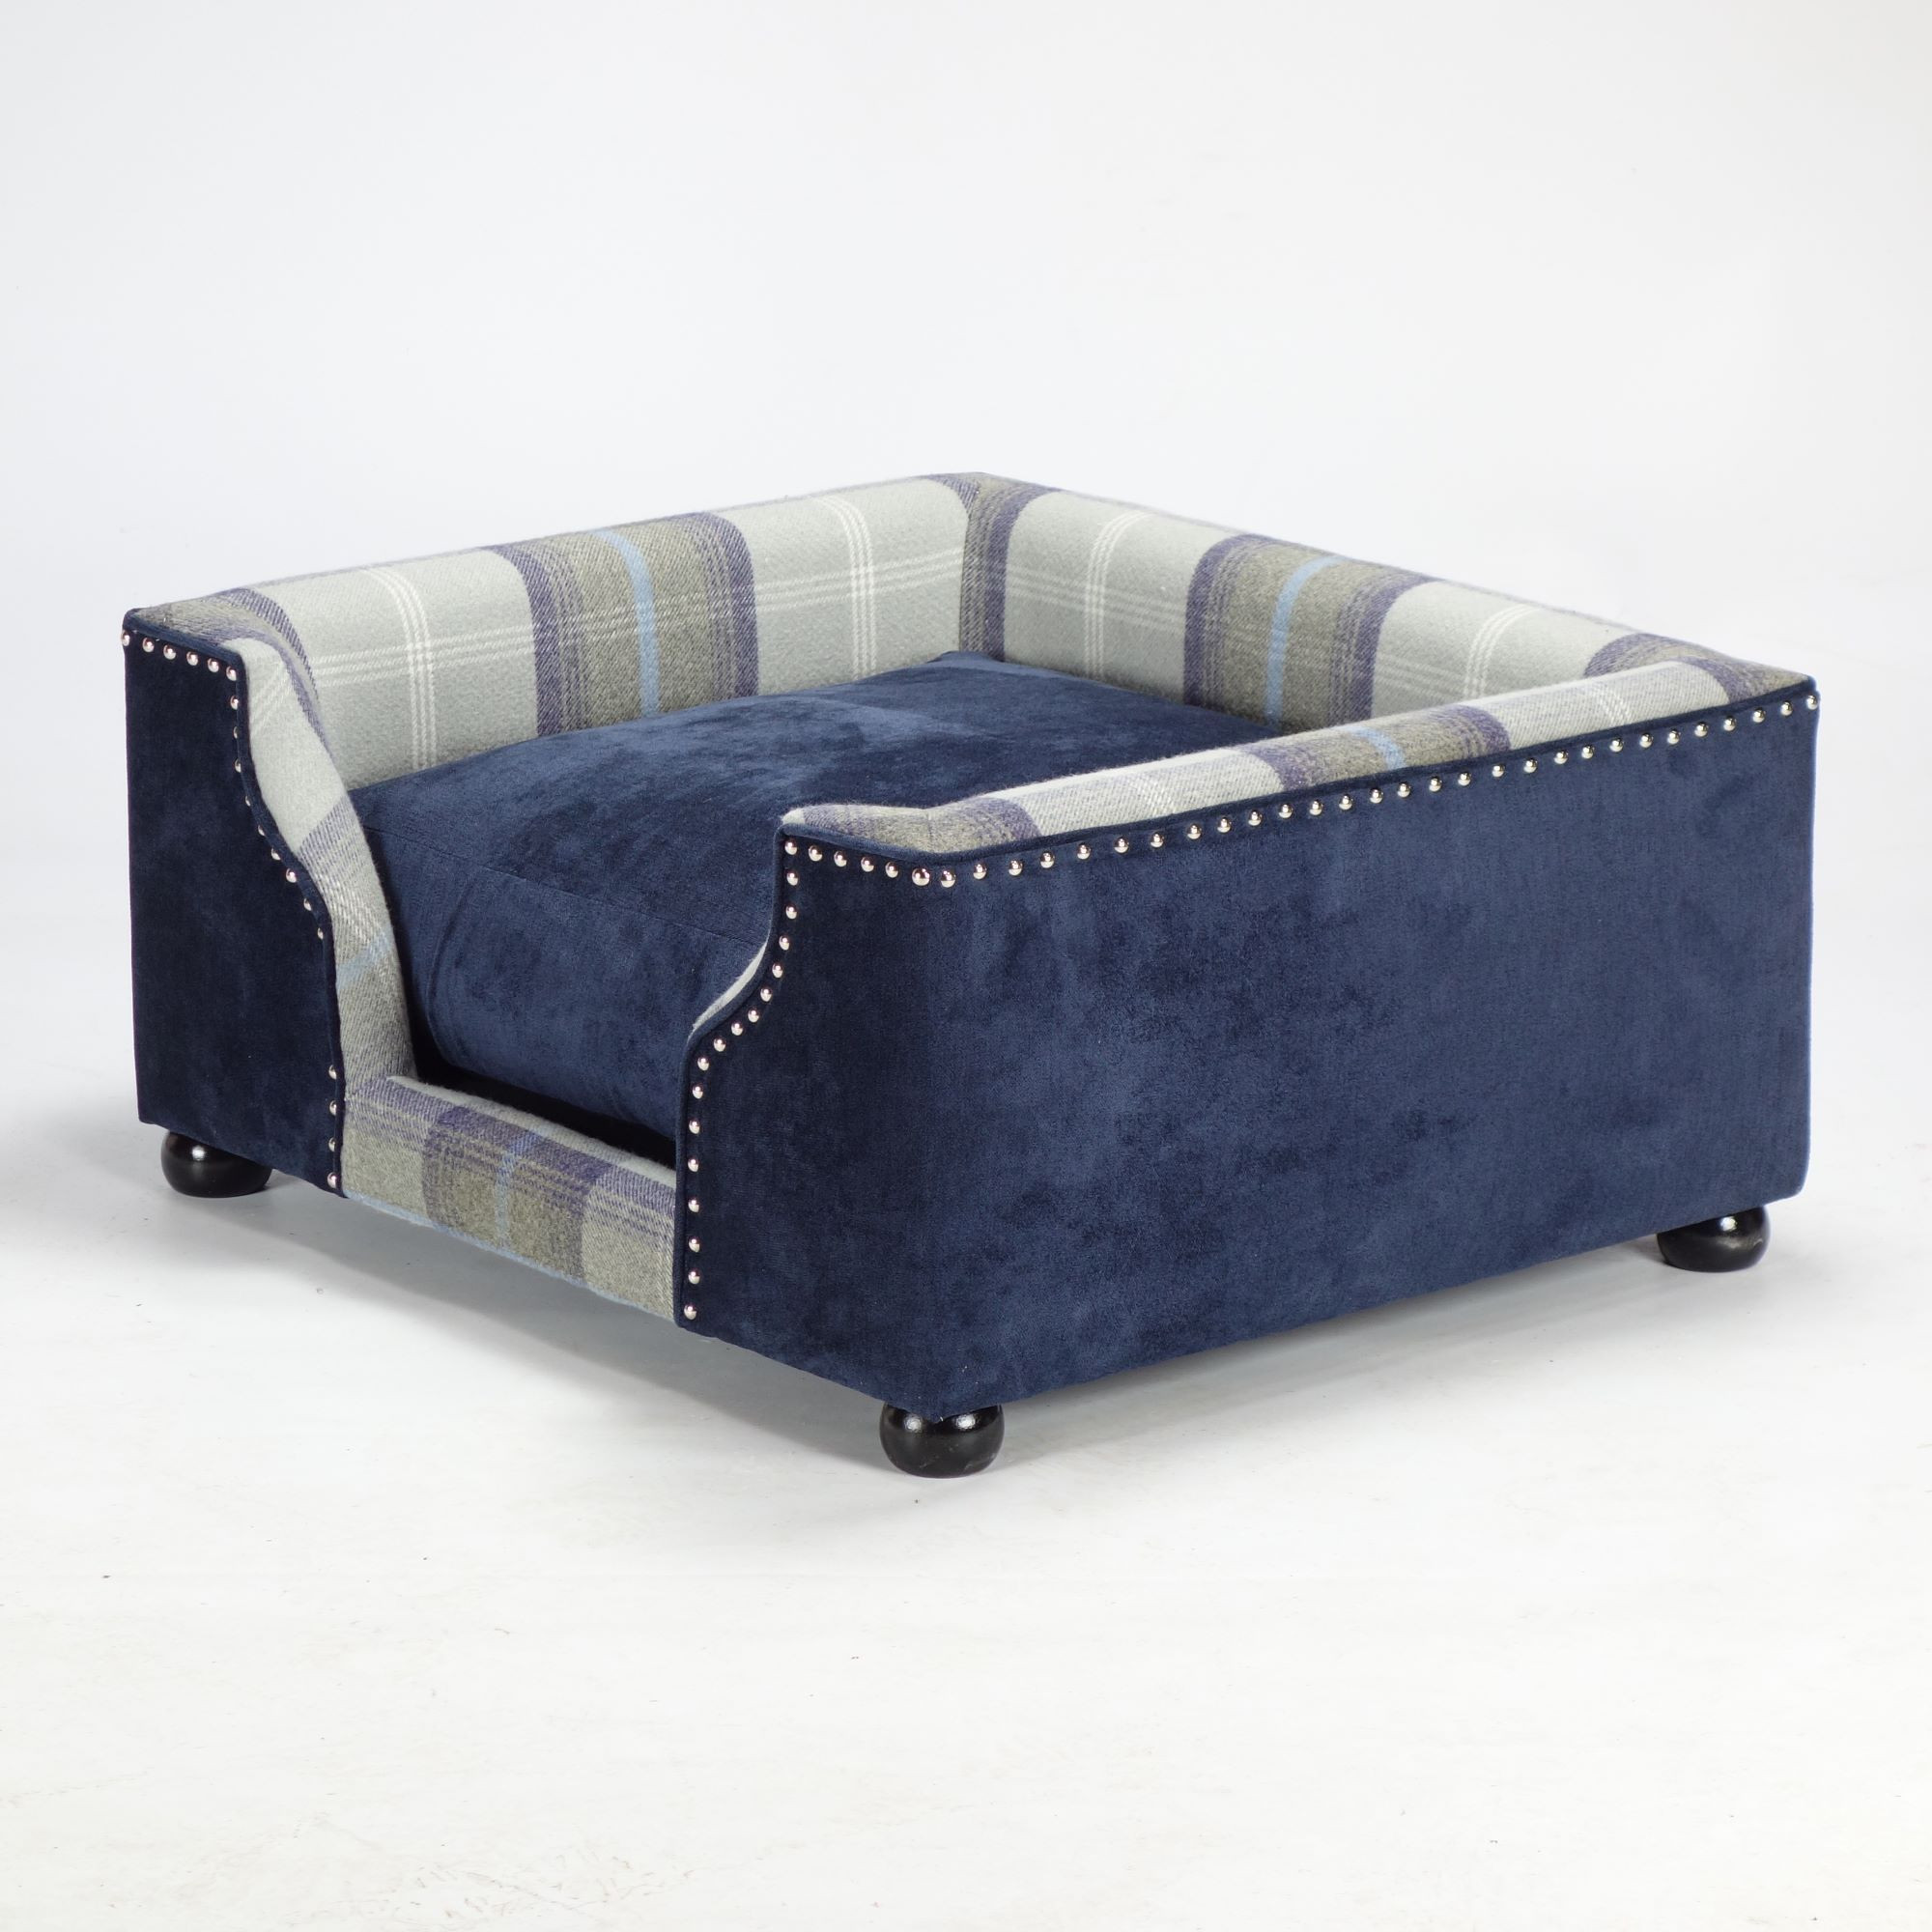 Luxury Dog Beds Handmade In The Uk The Fabulous Dog Bed Company Dog Bed Luxury Dog Bed Dog Sofa Bed